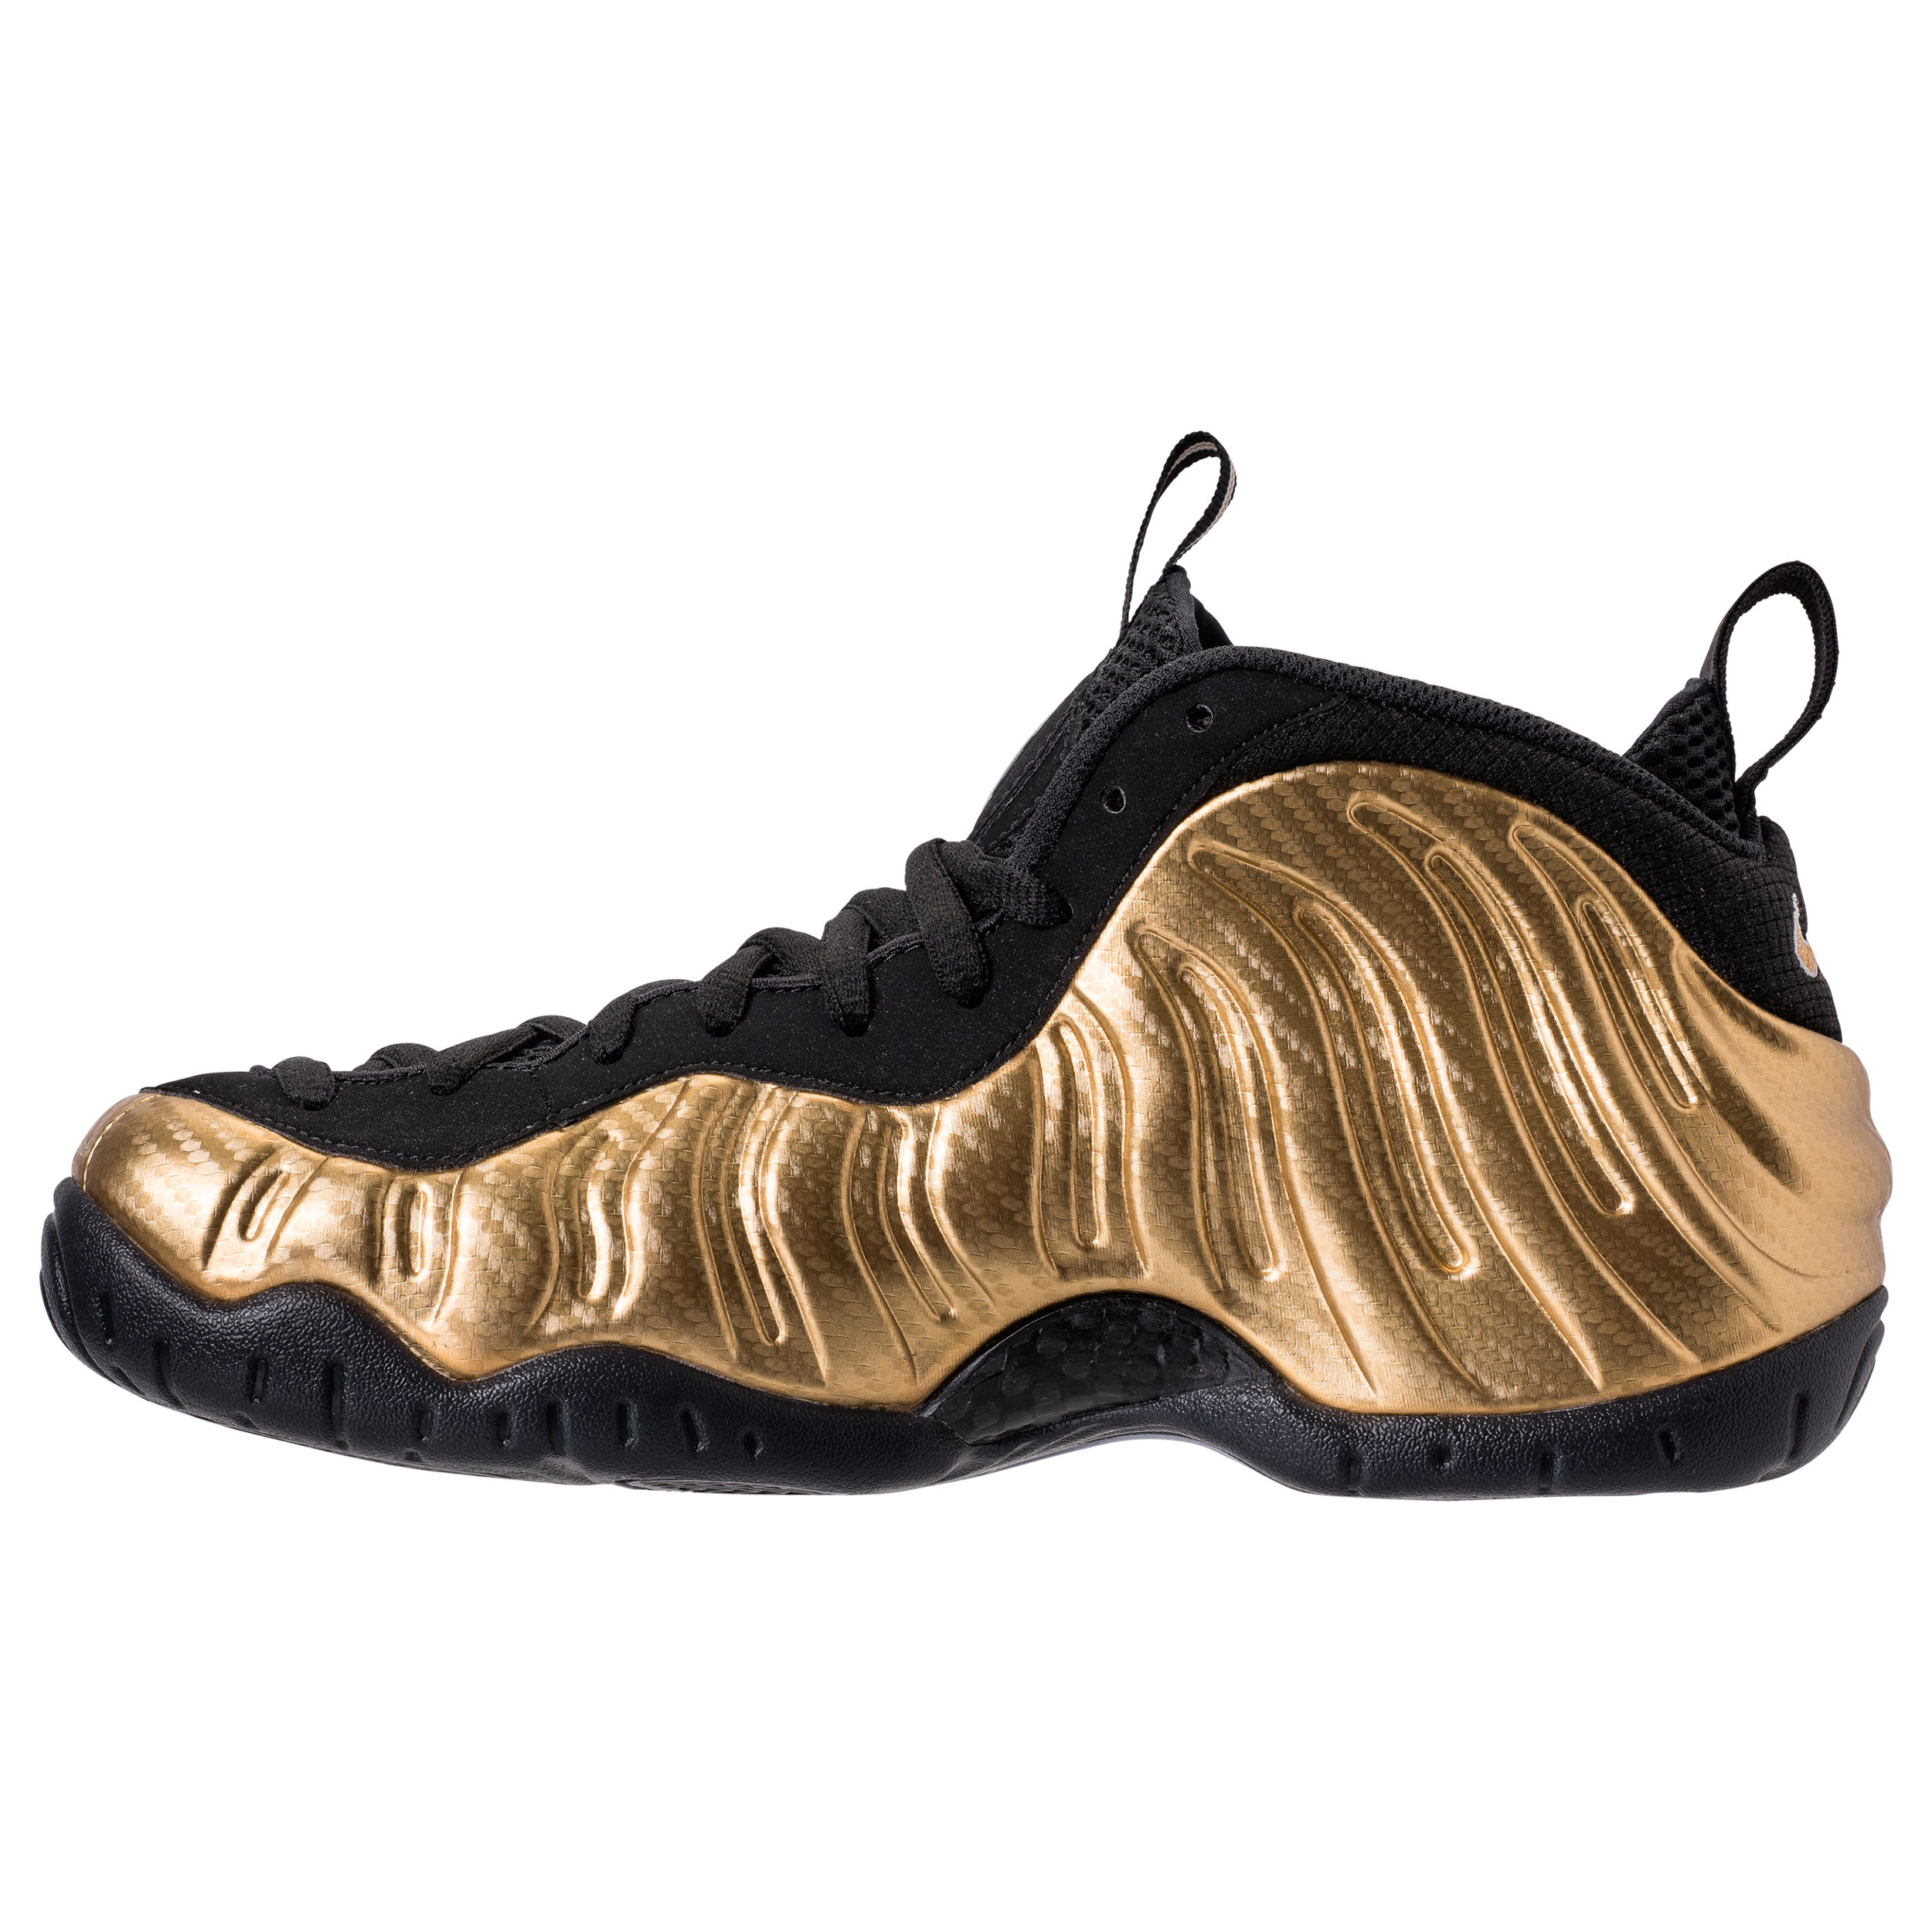 64d57d8cd6c nike air foamposite pro metallic gold 3 - WearTesters